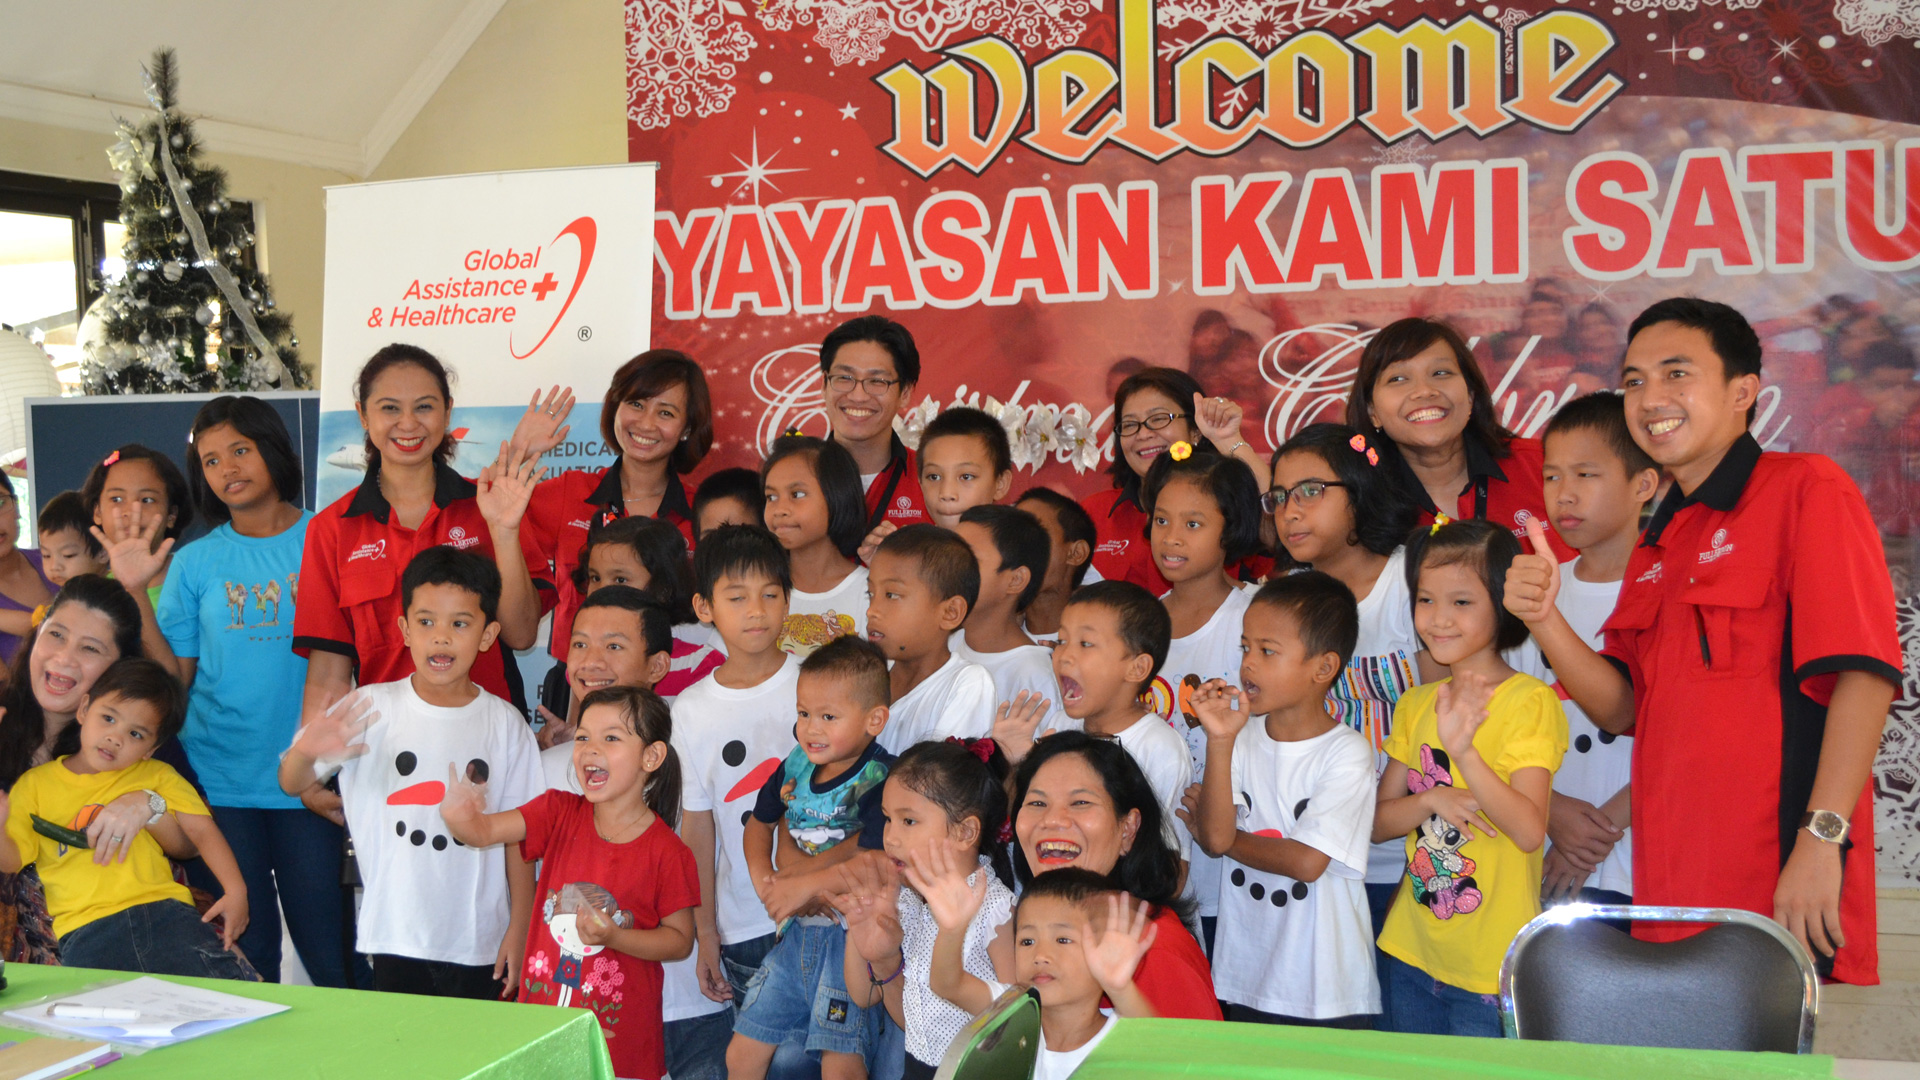 Global Assistance And Healthcare Provides Dental Examination For Yayasan Kami Satu